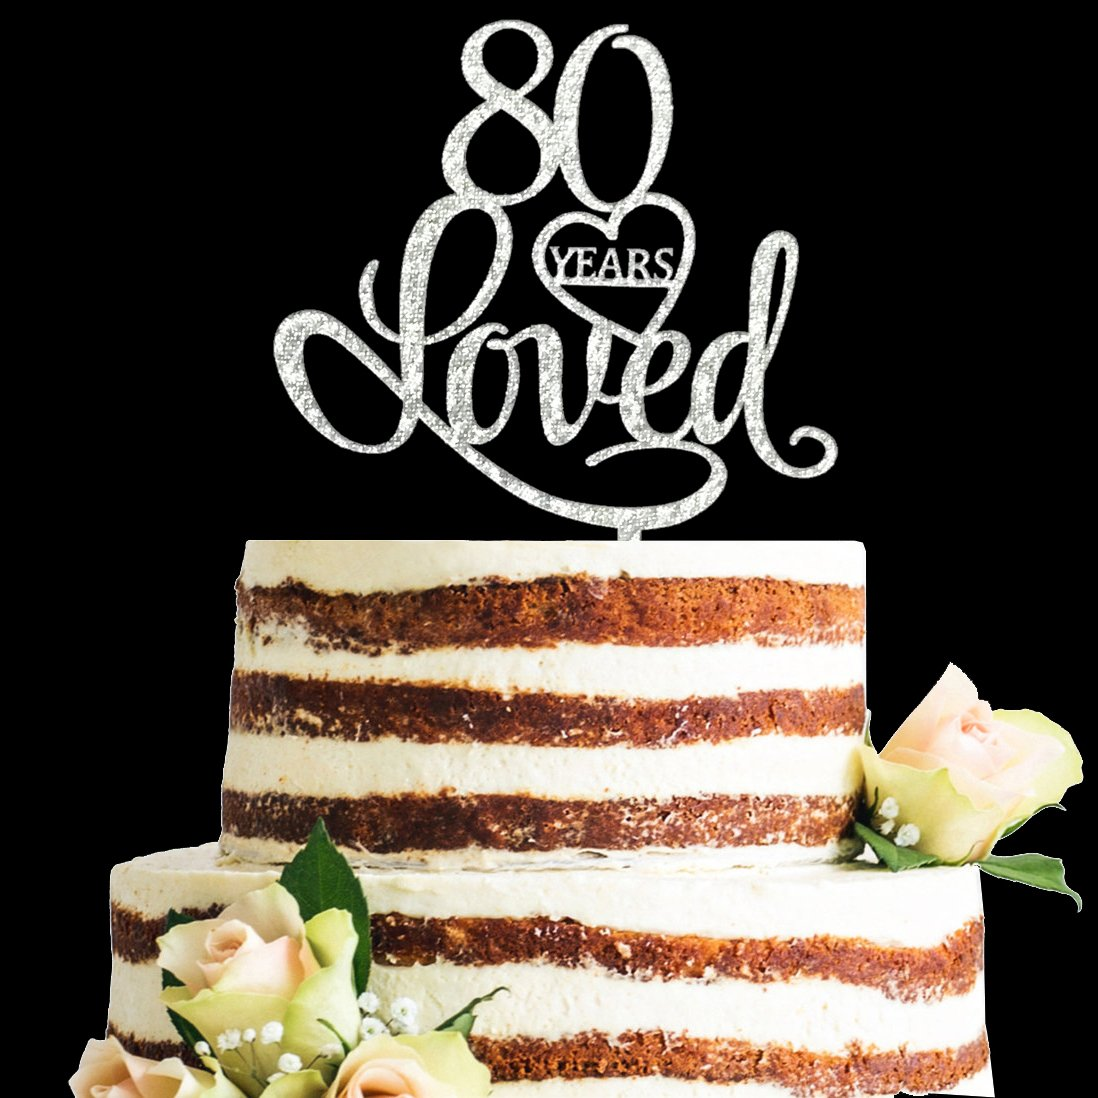 Glitter Silver Acrylic 80 Years Loved Cake Topper, 80th Birthday Anniversary Party Decorations (80, Silver)